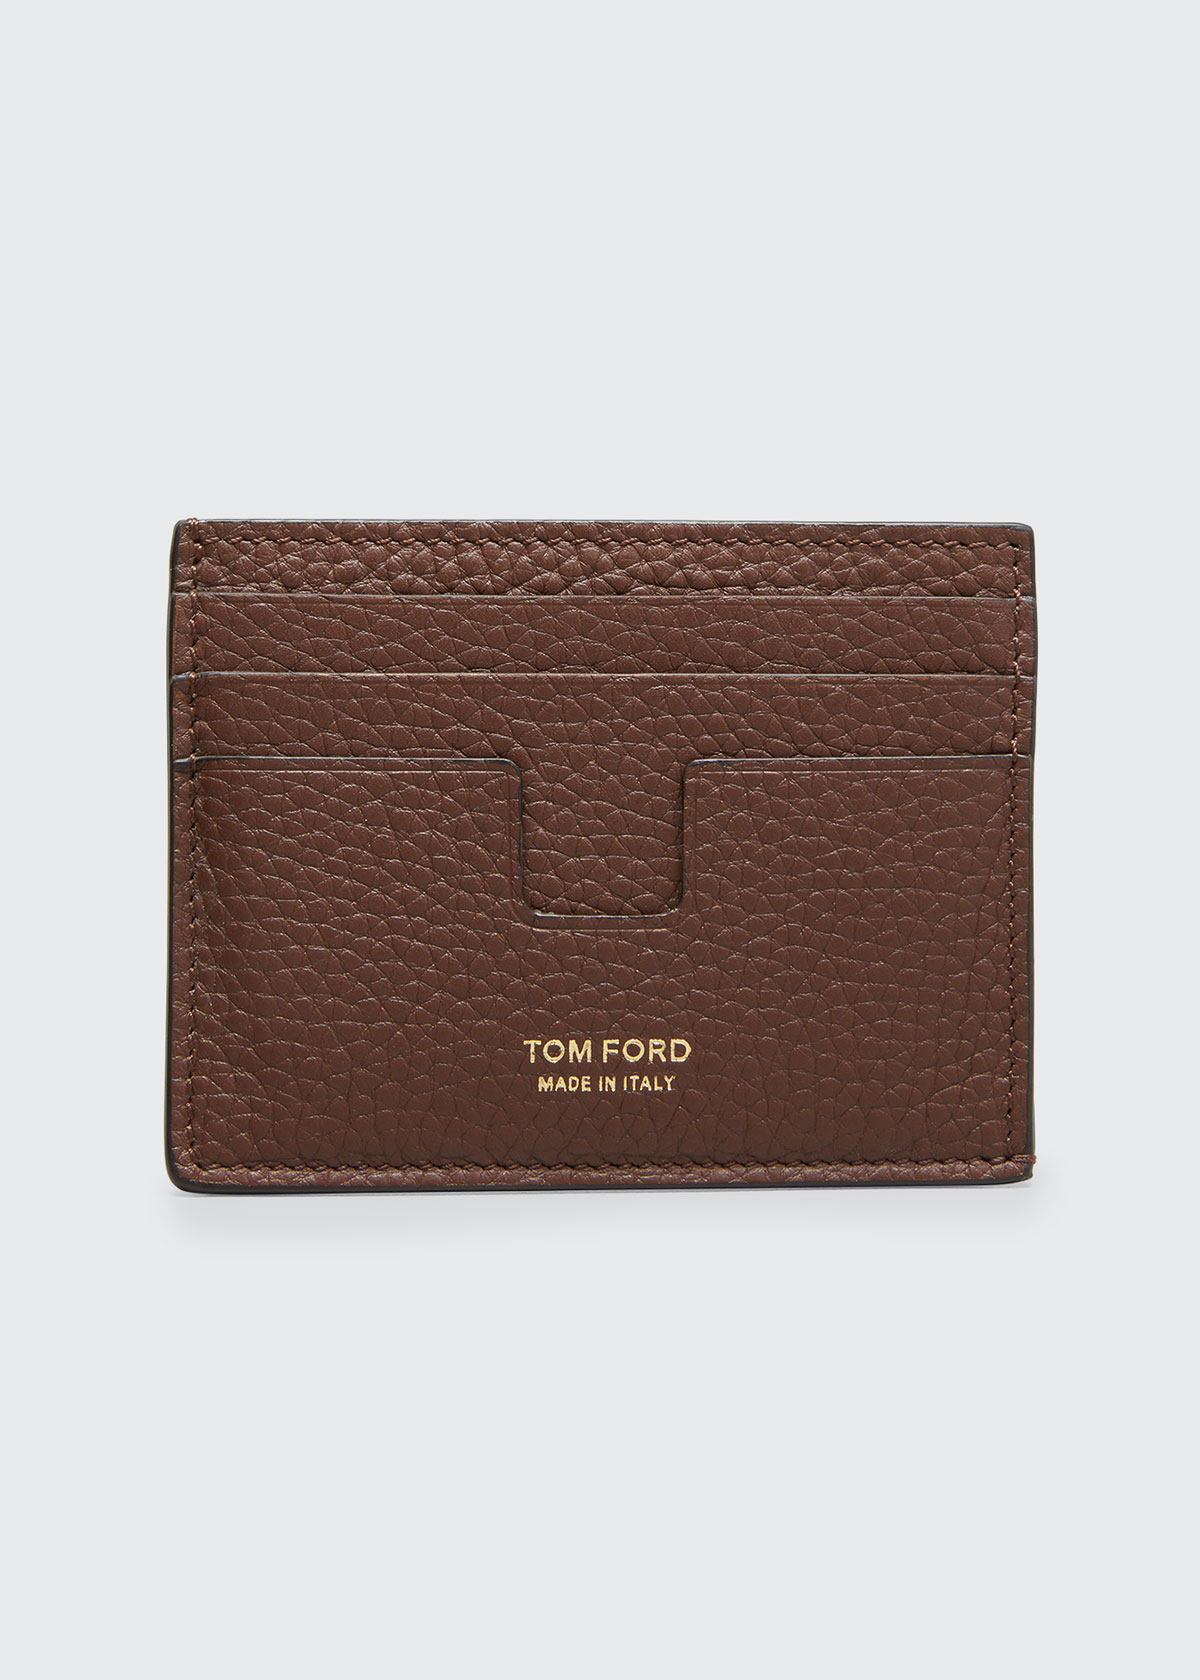 Tom Ford Accessories MEN'S LEATHER CARD HOLDER